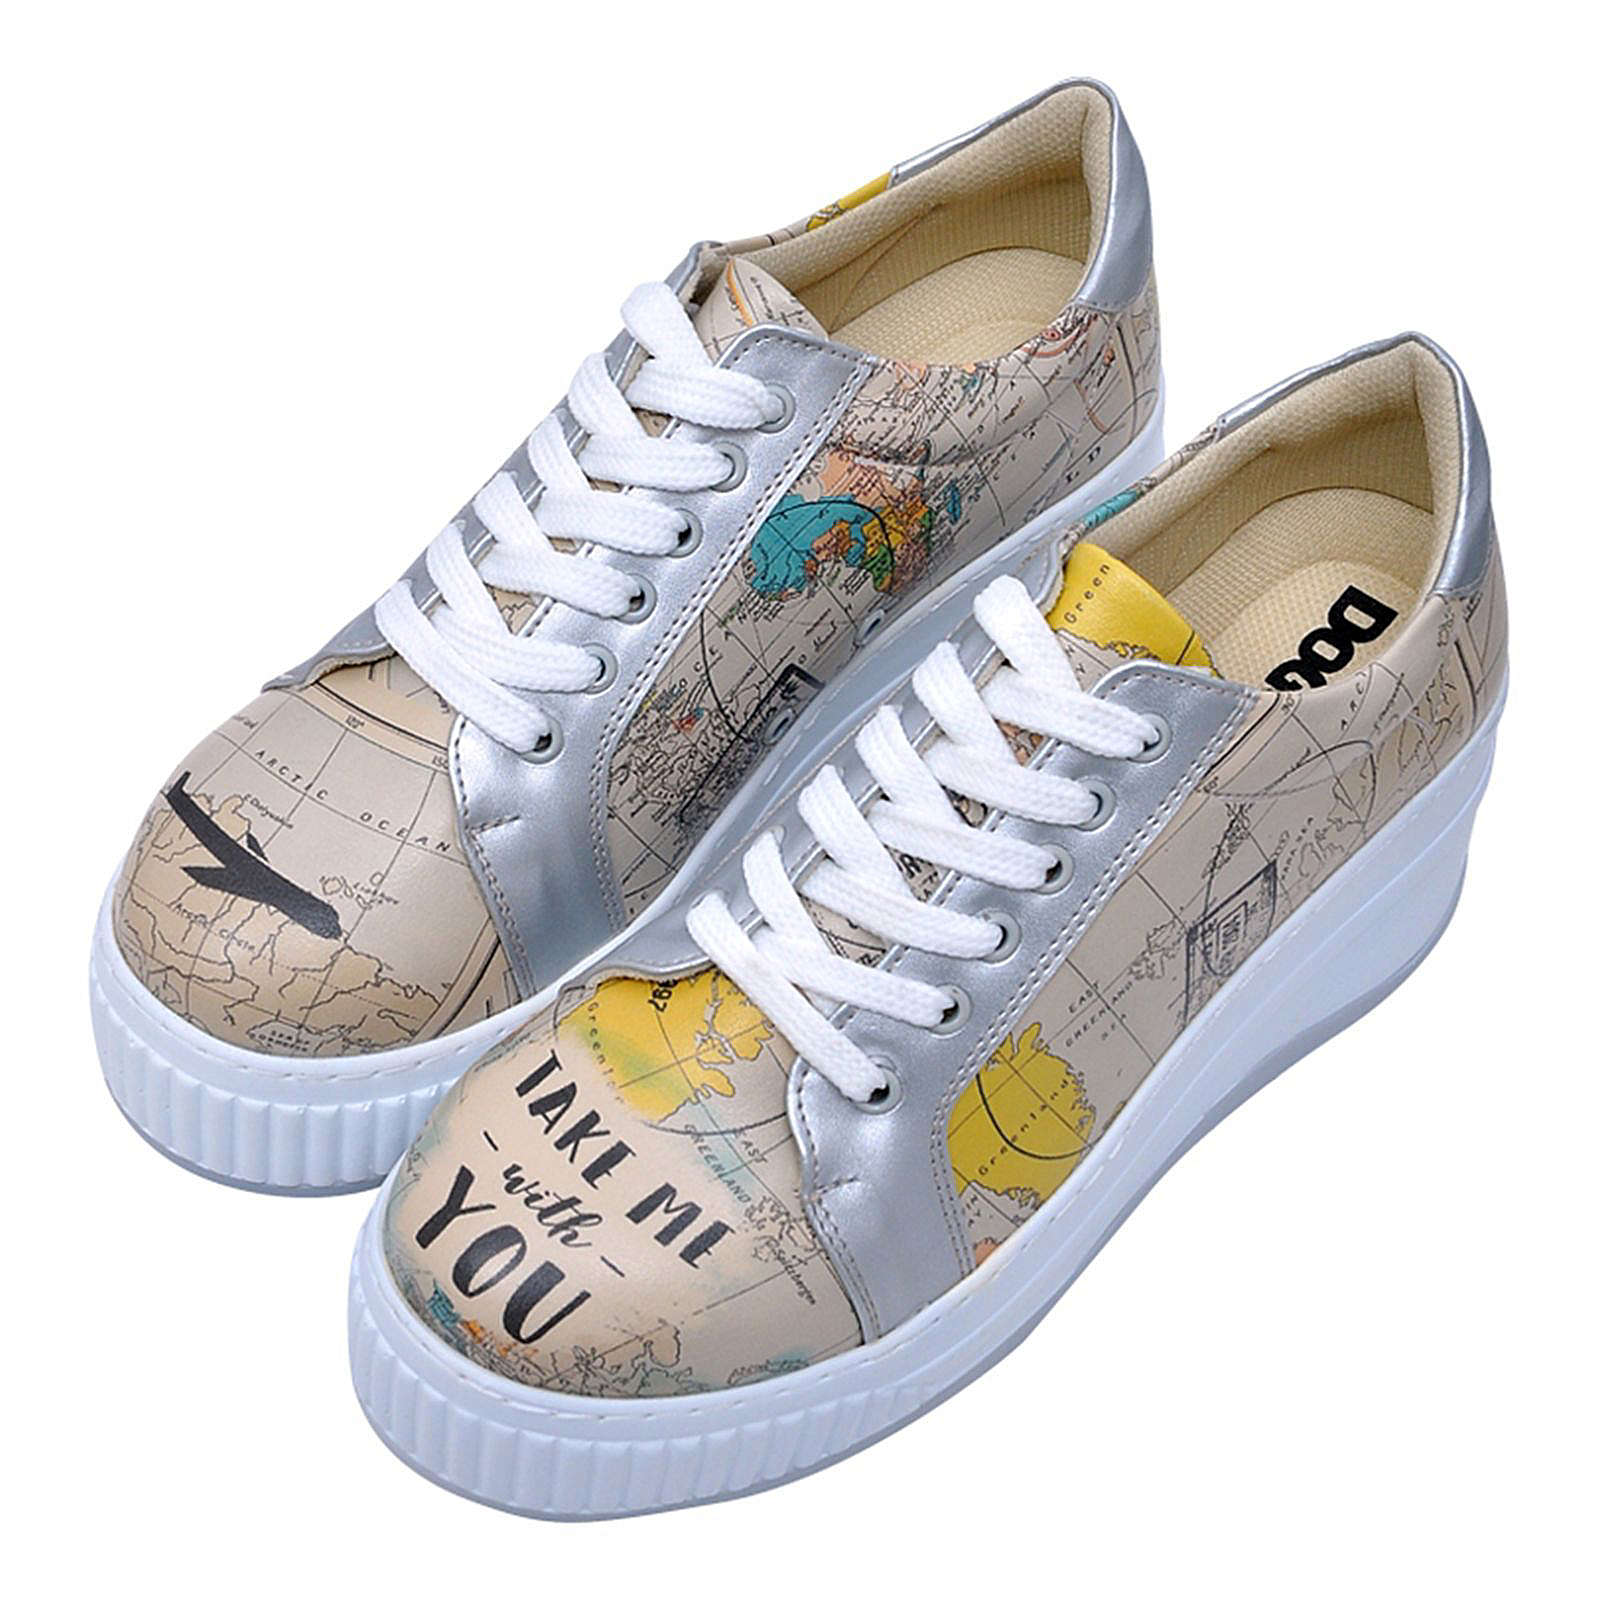 Dogo Shoes DOGO Loretta Take me with you Sneakers Low natur Damen Gr. 36